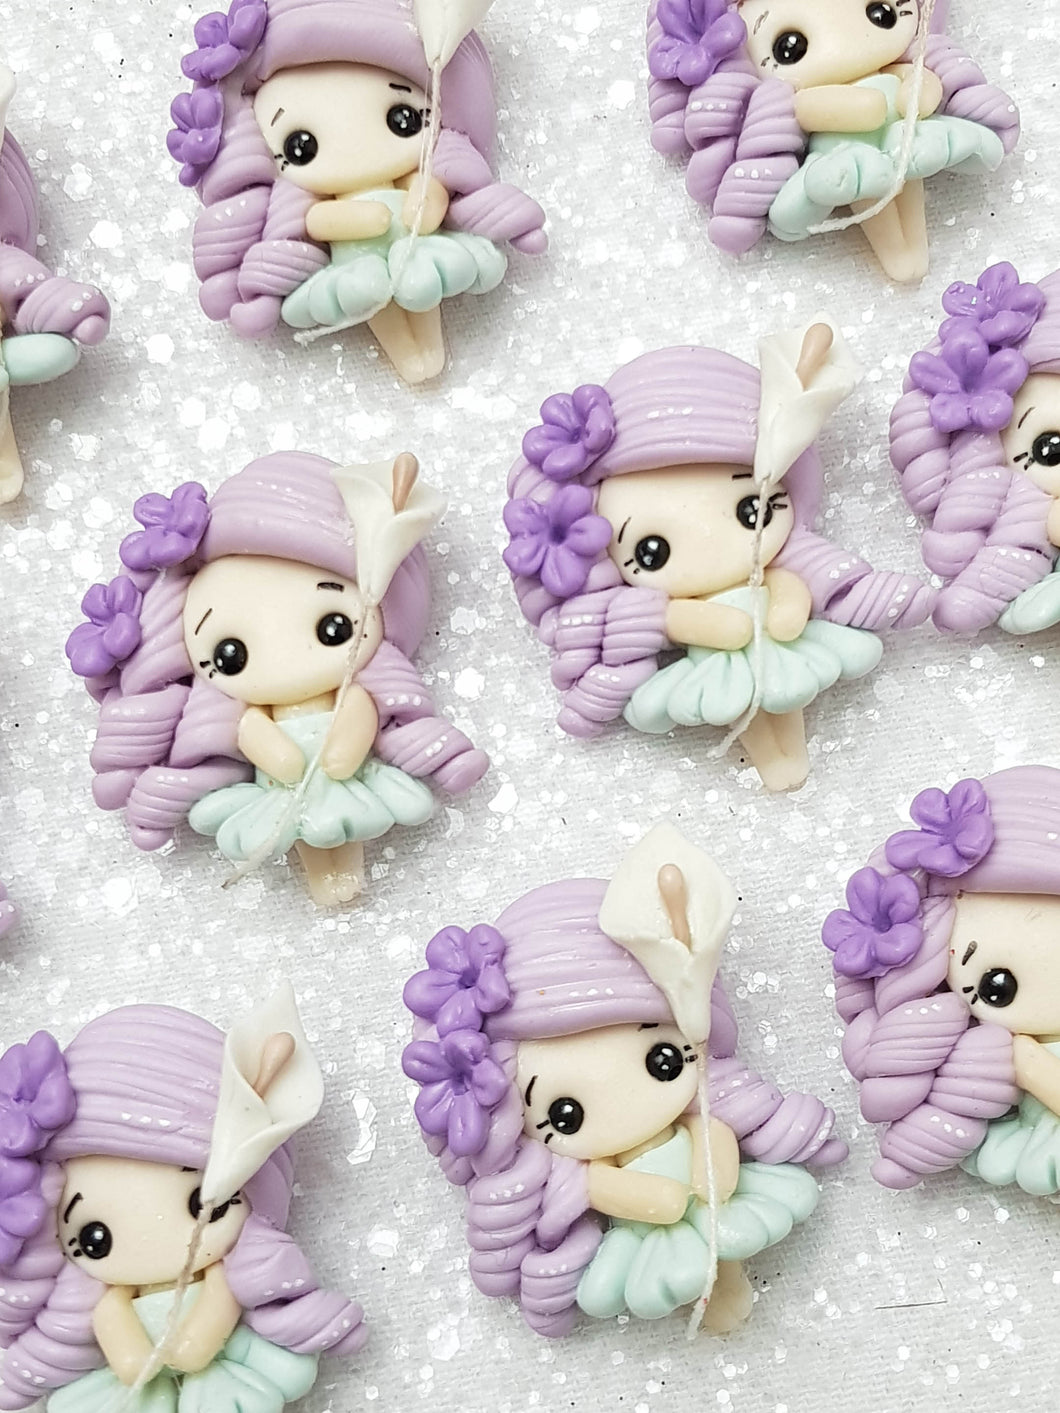 Clay Charm Embellishment - NEW THUMBELINA - Crafty Mood